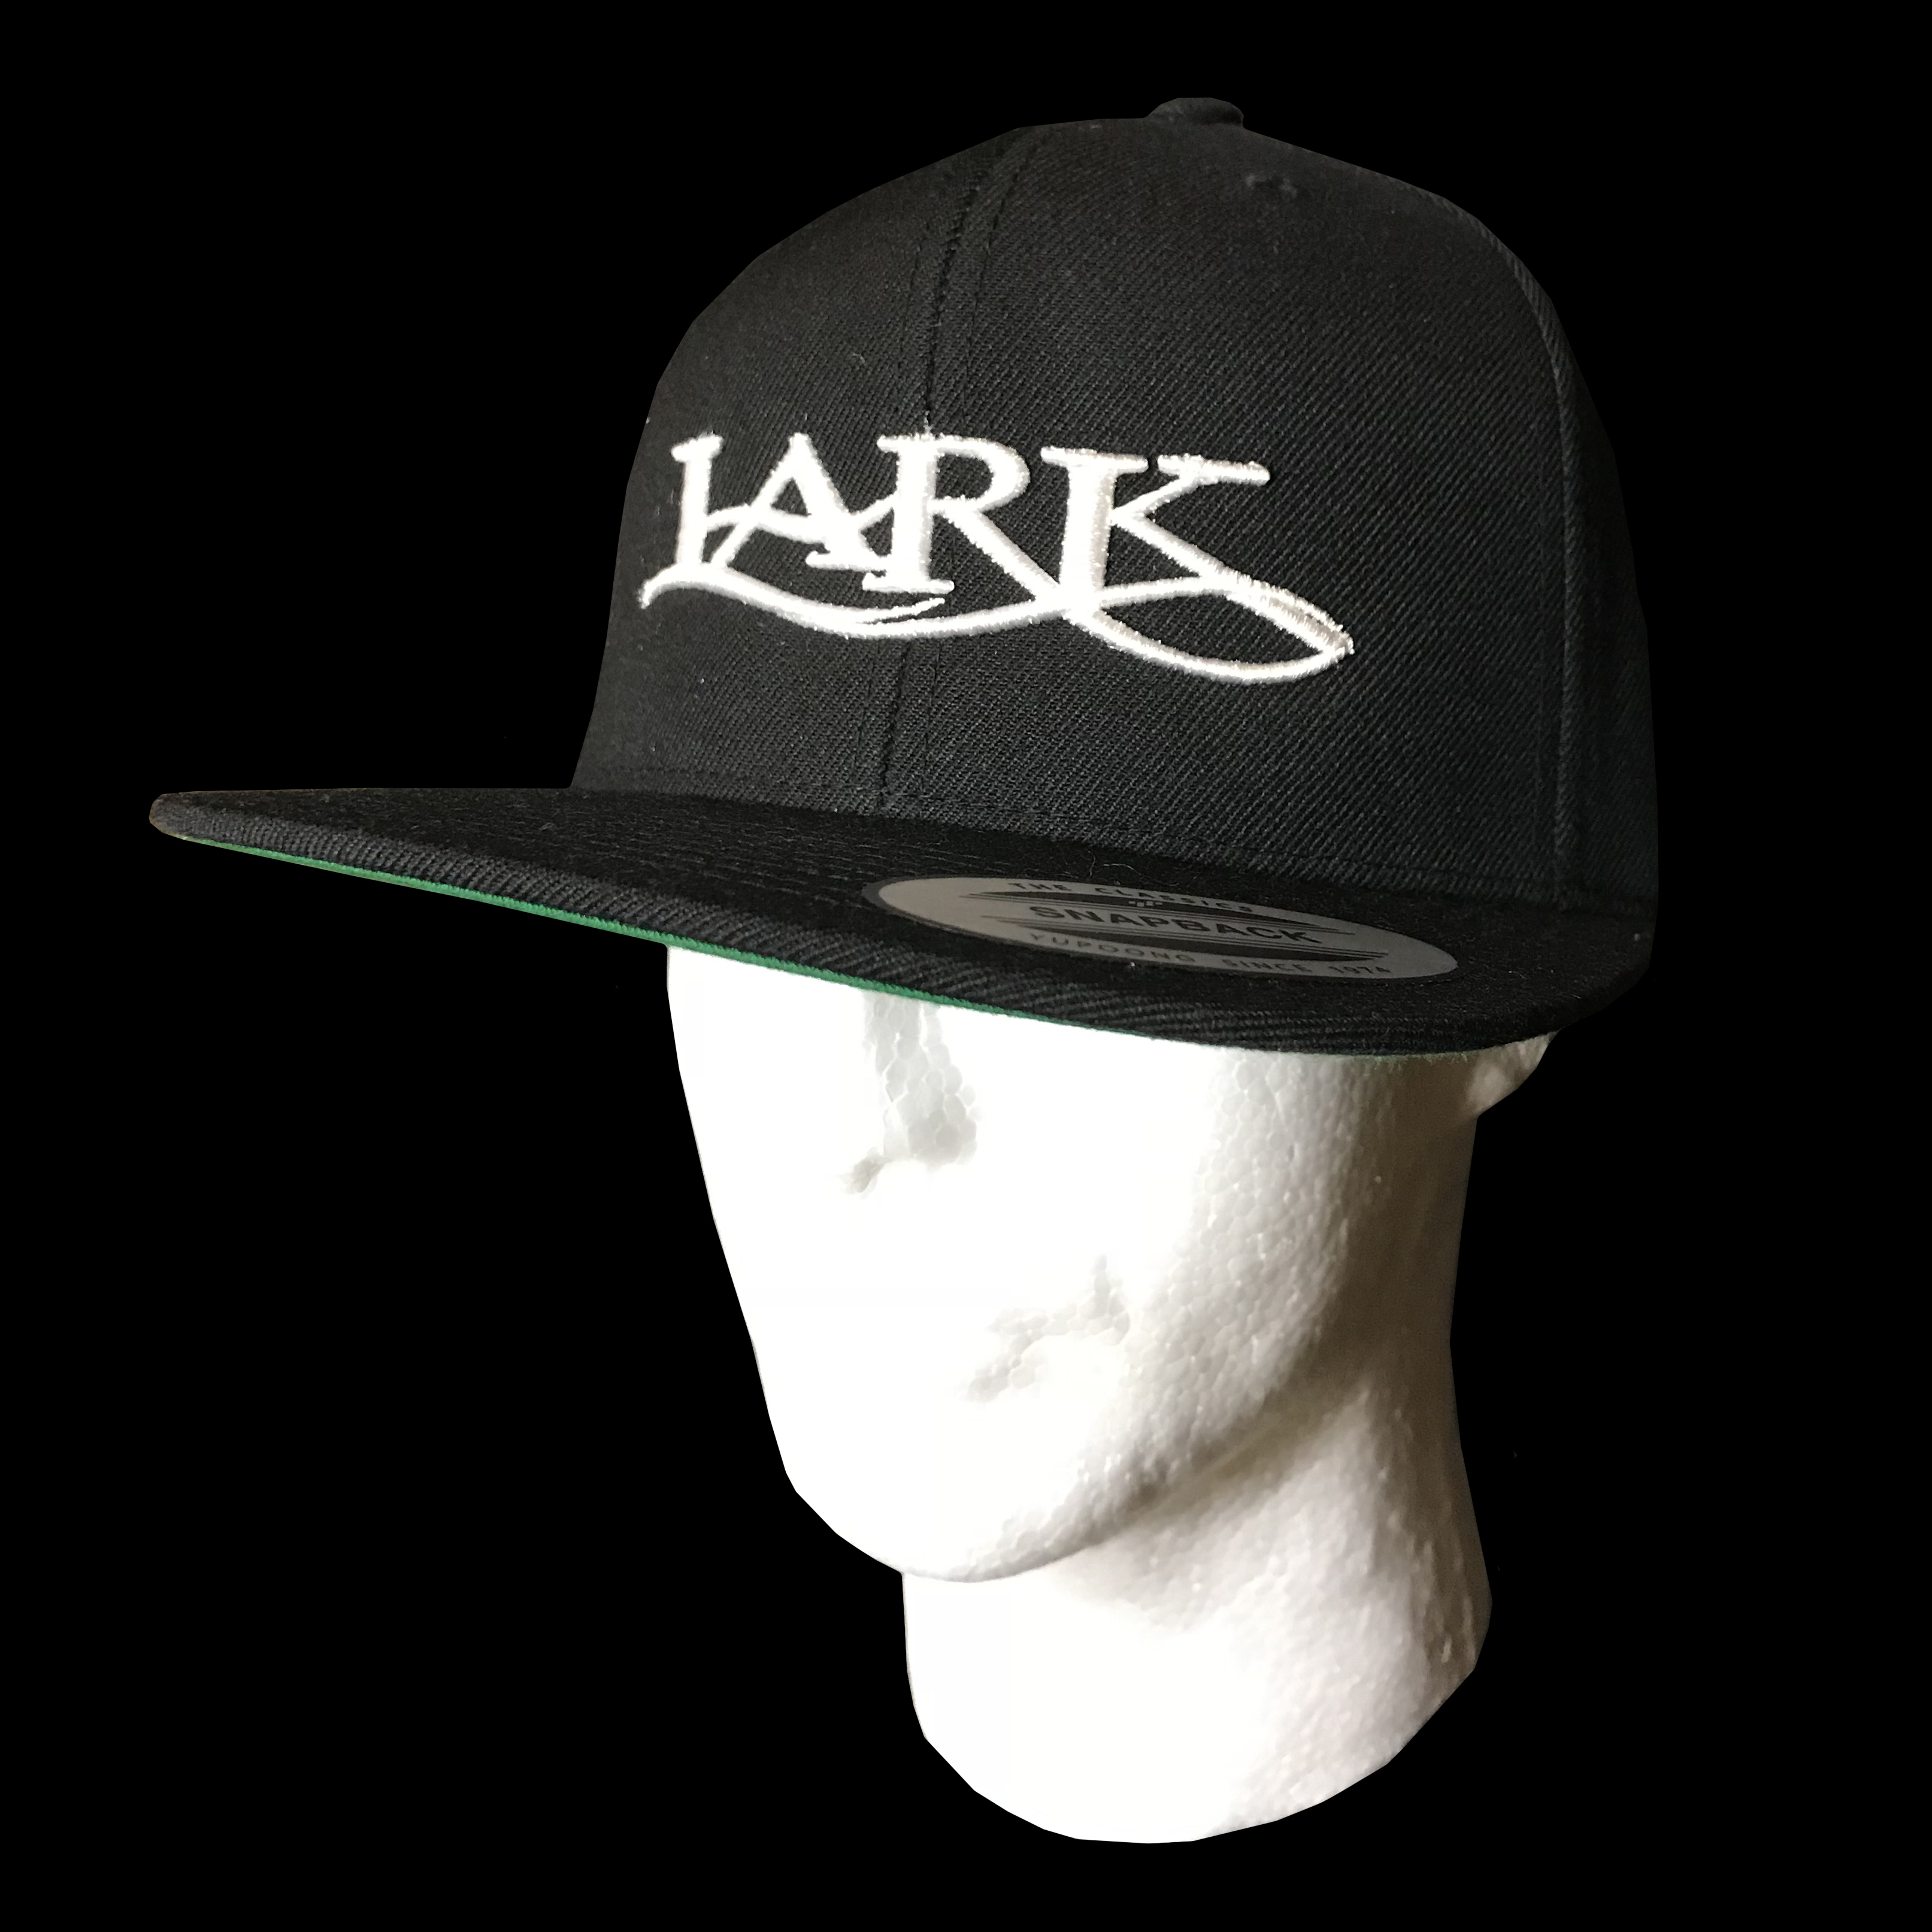 8140b12effdb1  25.00  Lark Fancy Lettering on Snapback Baseball Cap – Colors  white  embroidery on black colored hat